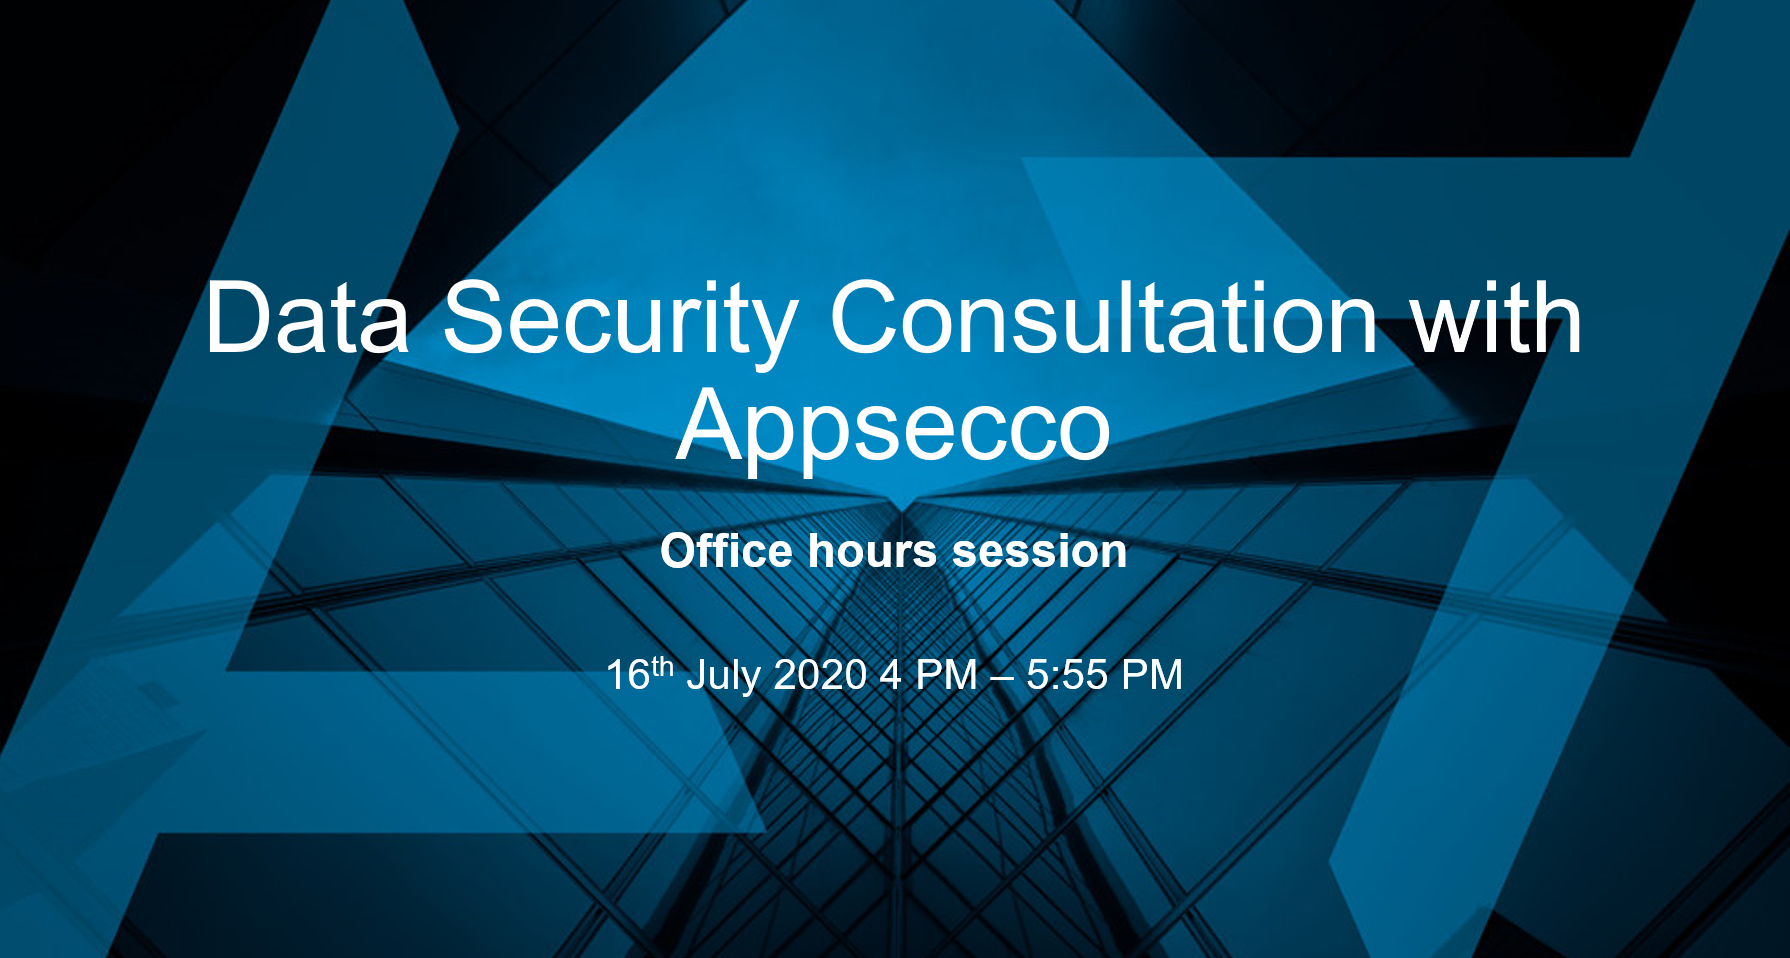 Data security consultation with Appsecco - Office hours session